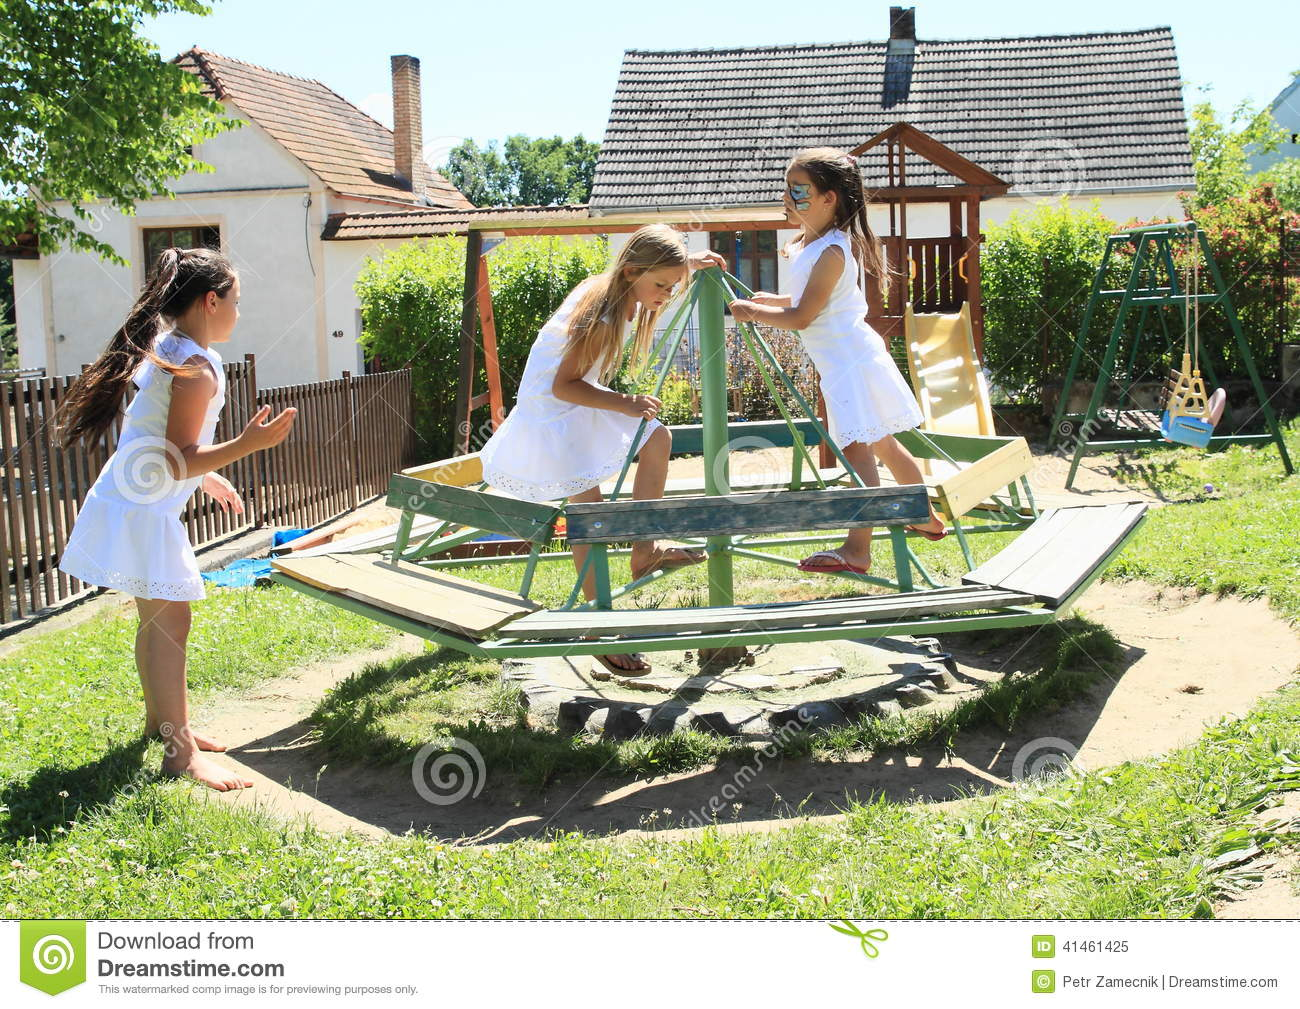 Girls in white dresses on marry-go-round